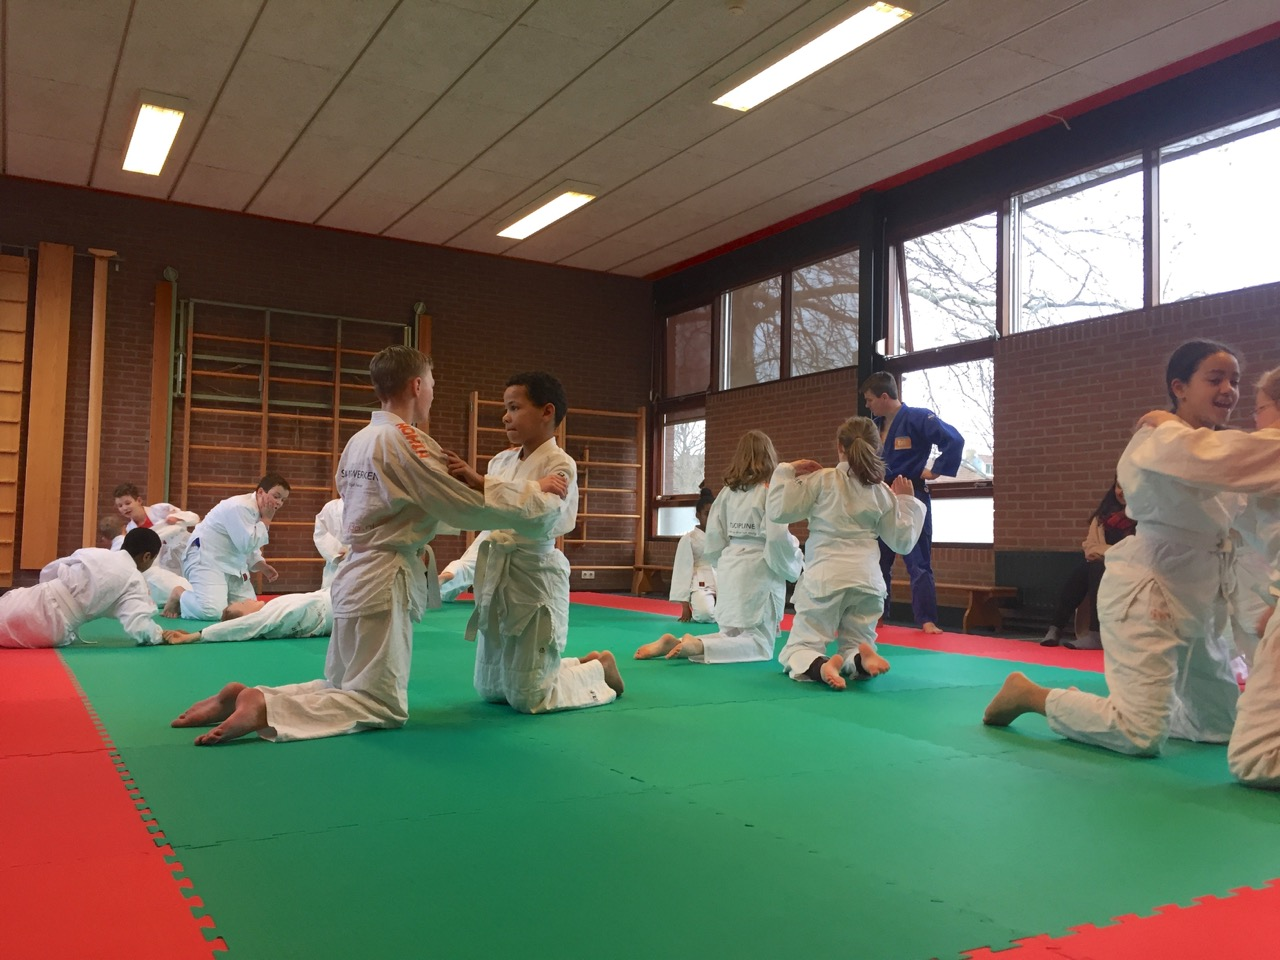 Speellokaal Christal is een dojo